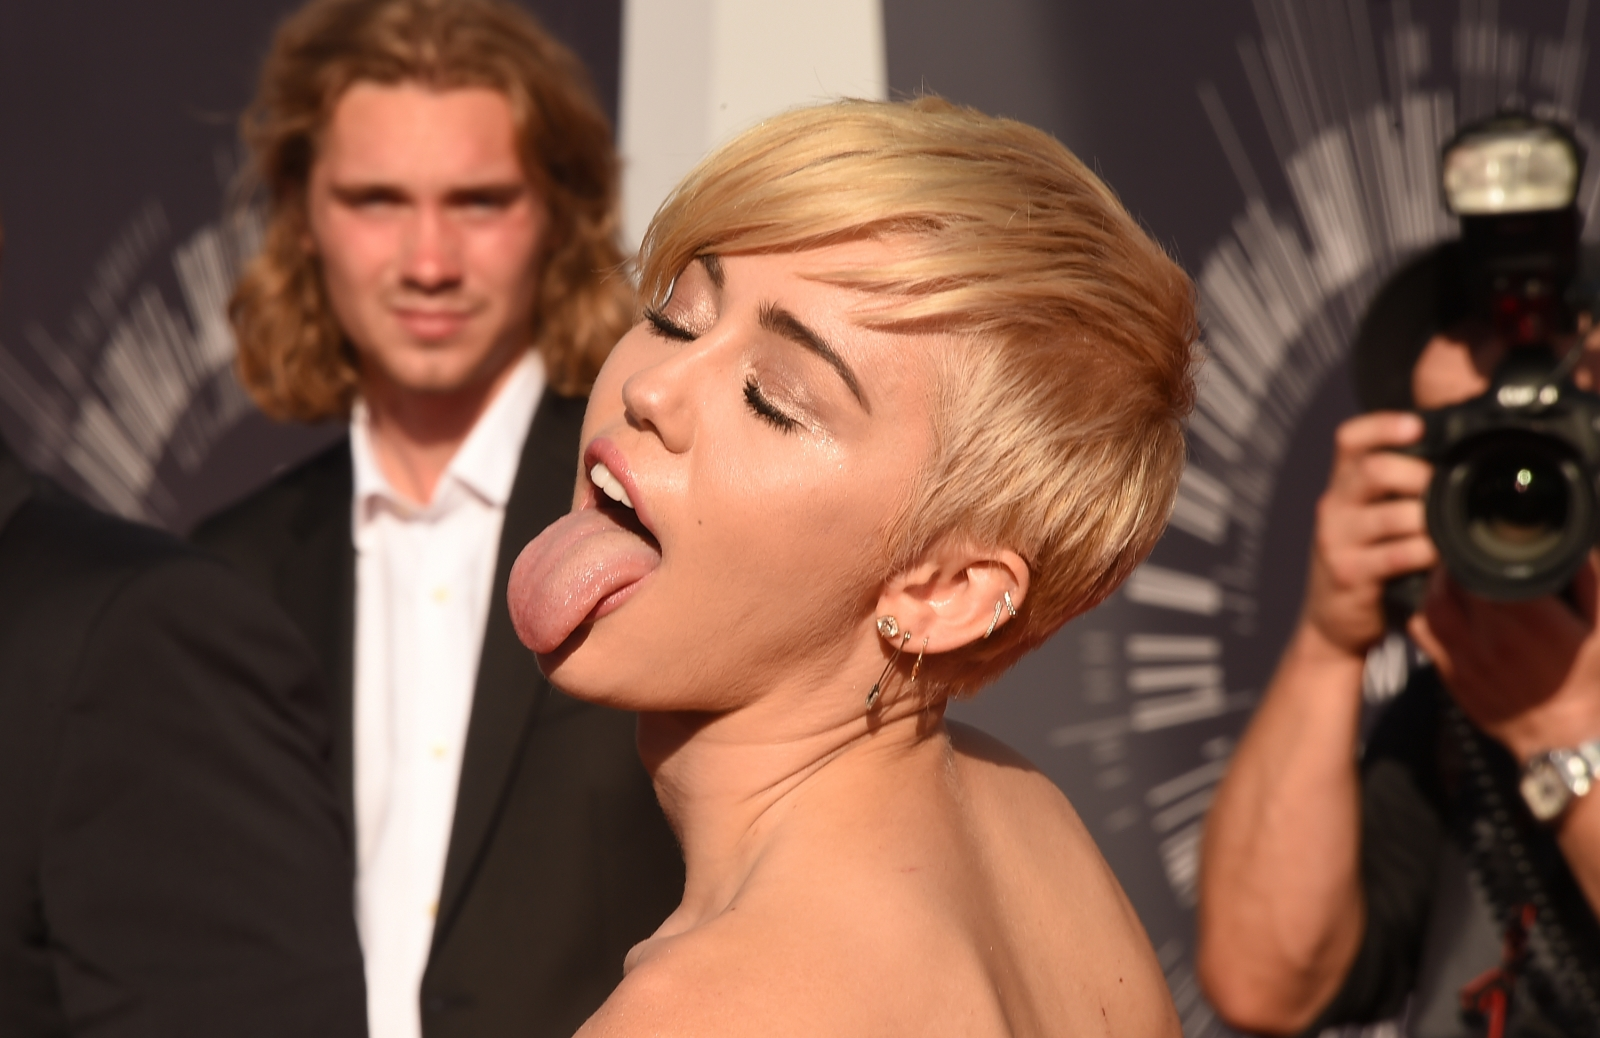 Miley Cyrus shows off new ring from Liam Hemsworth